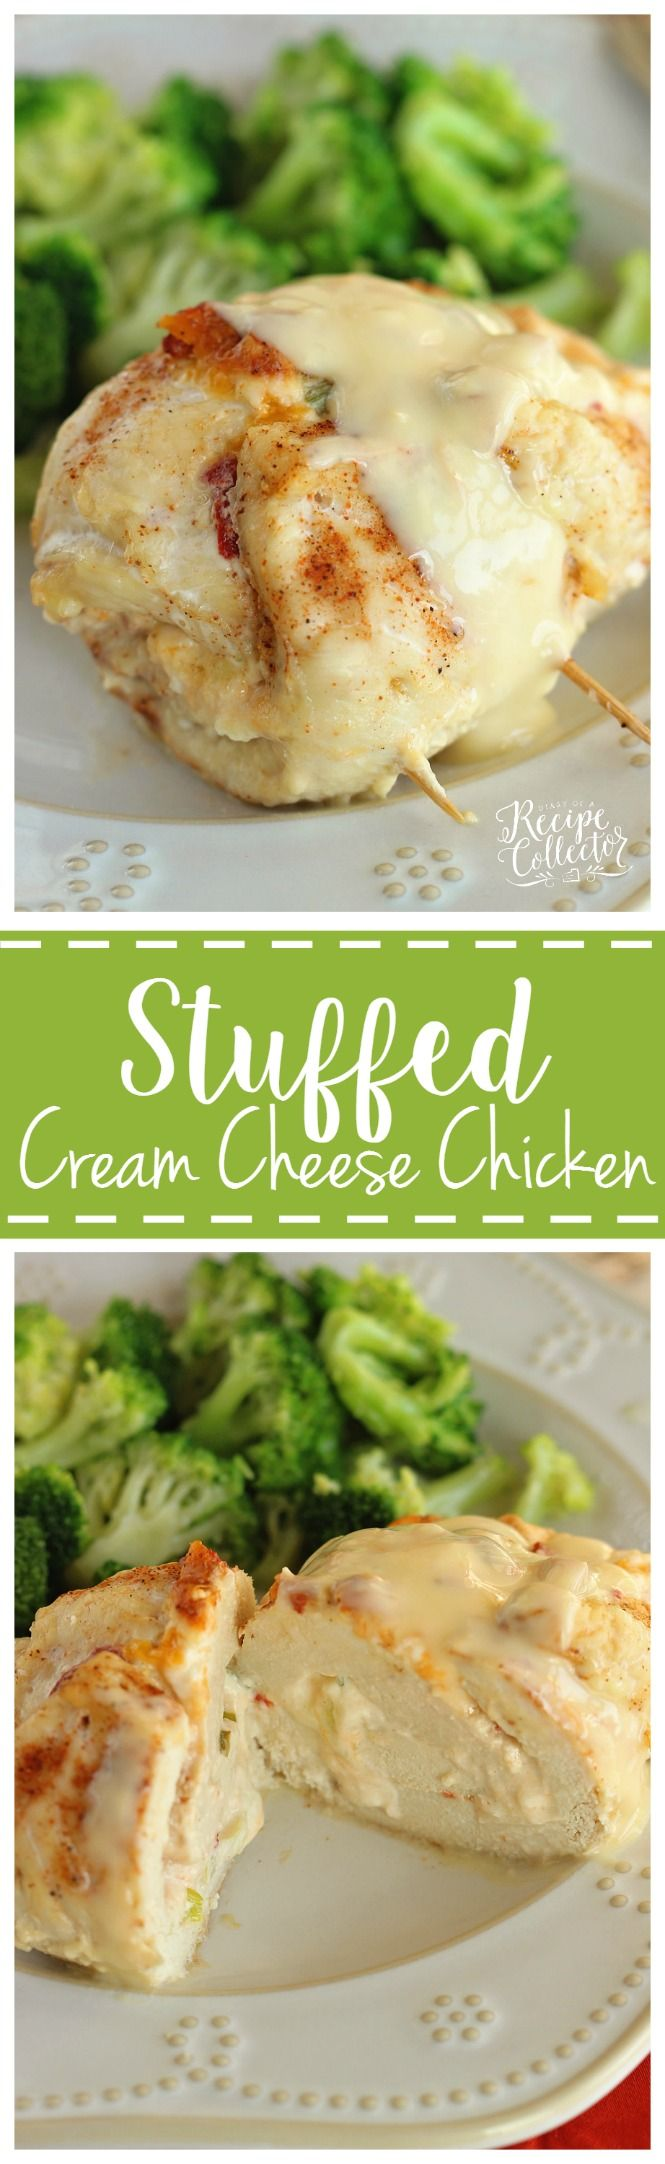 Stuffed Cream Cheese Chicken – Chicken breasts filled and rolled up with a delicious cream cheese spread a